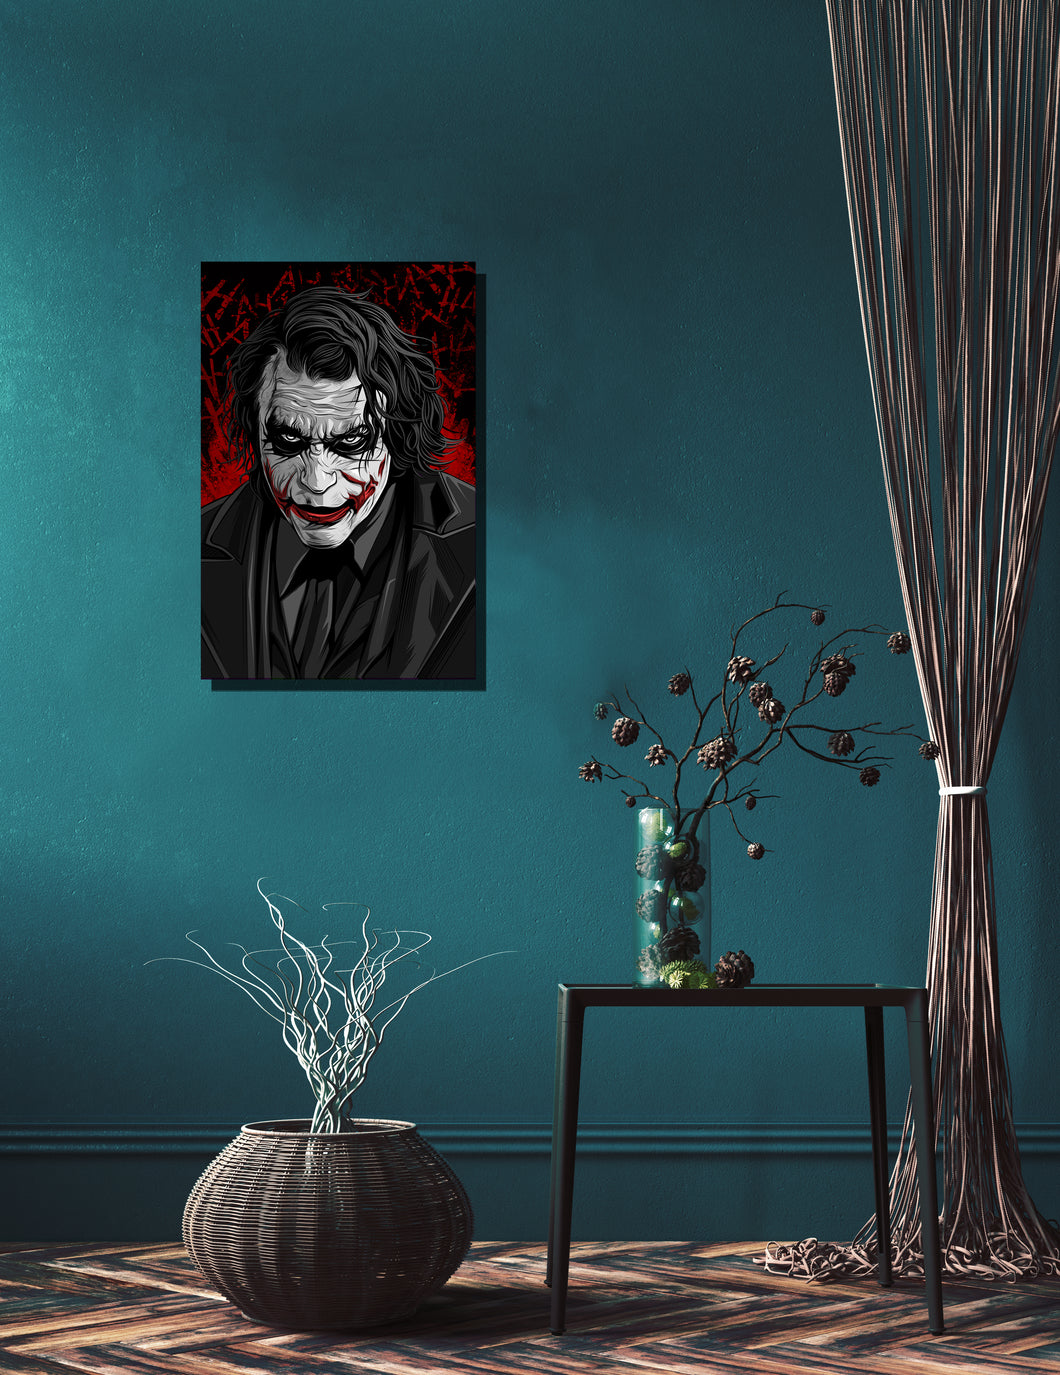 Joker (black 2) Artwork by Code zero Studio